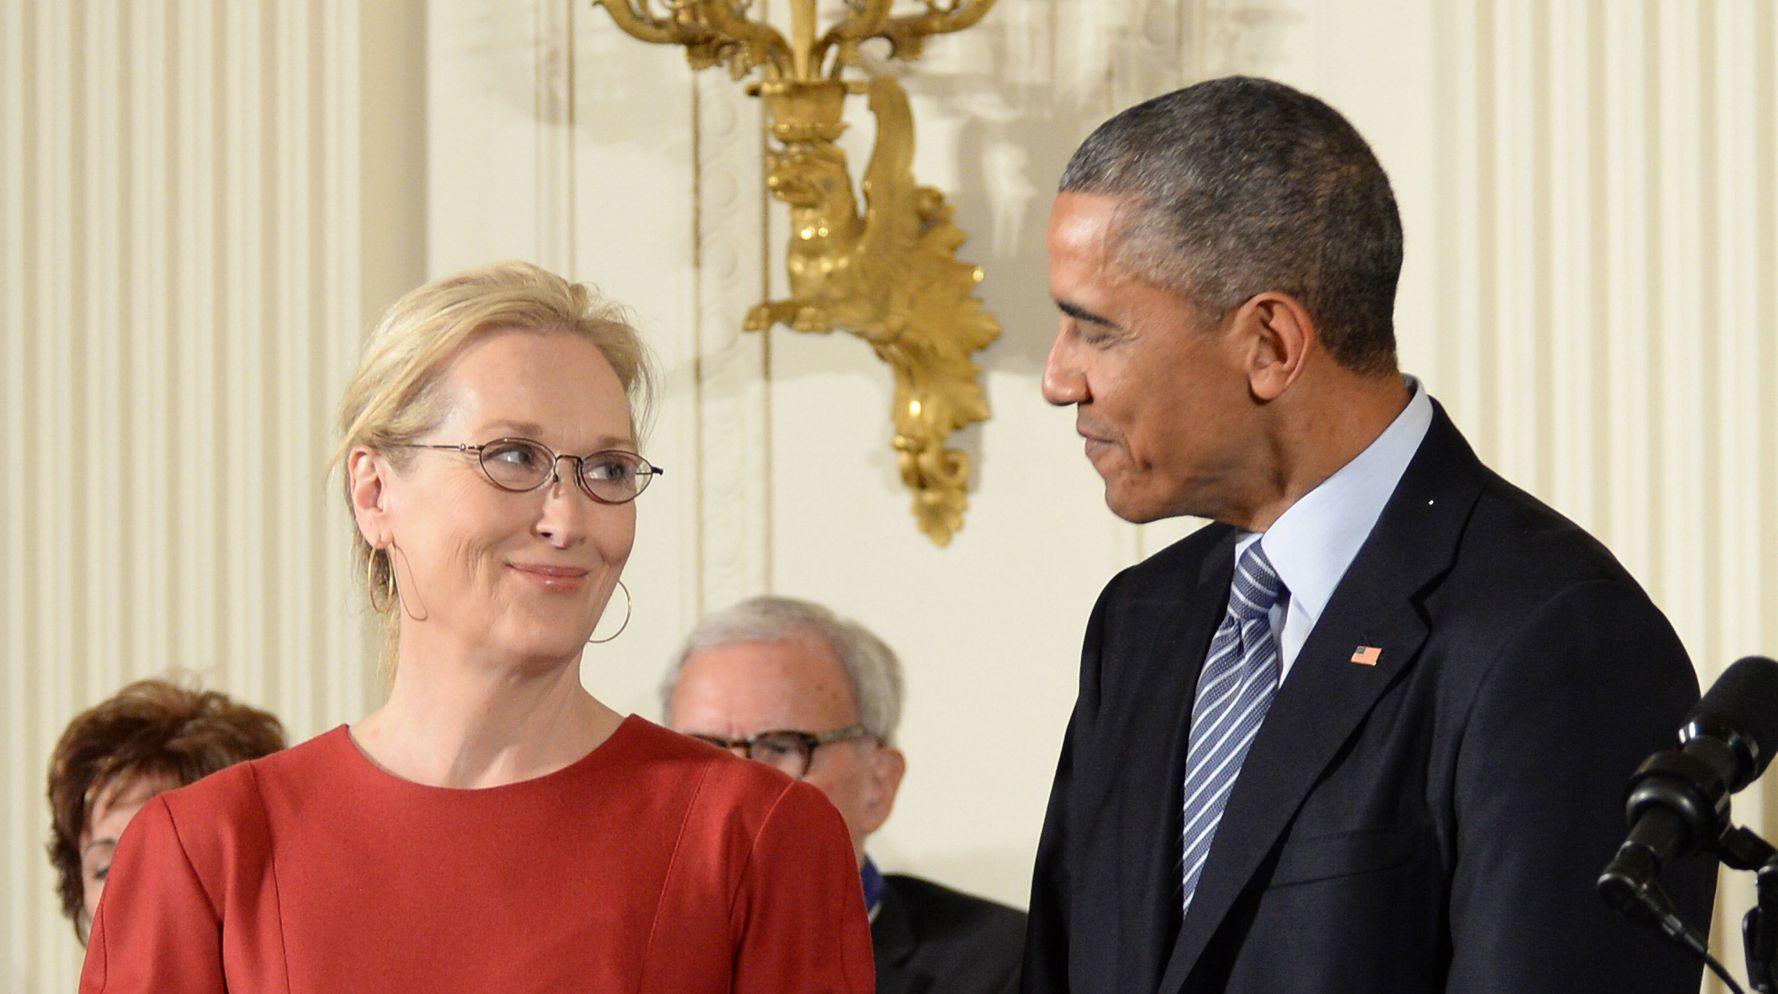 Meryl Streep Points Out Something Obama Got 'A Little Bit Wrong' In His Memoir